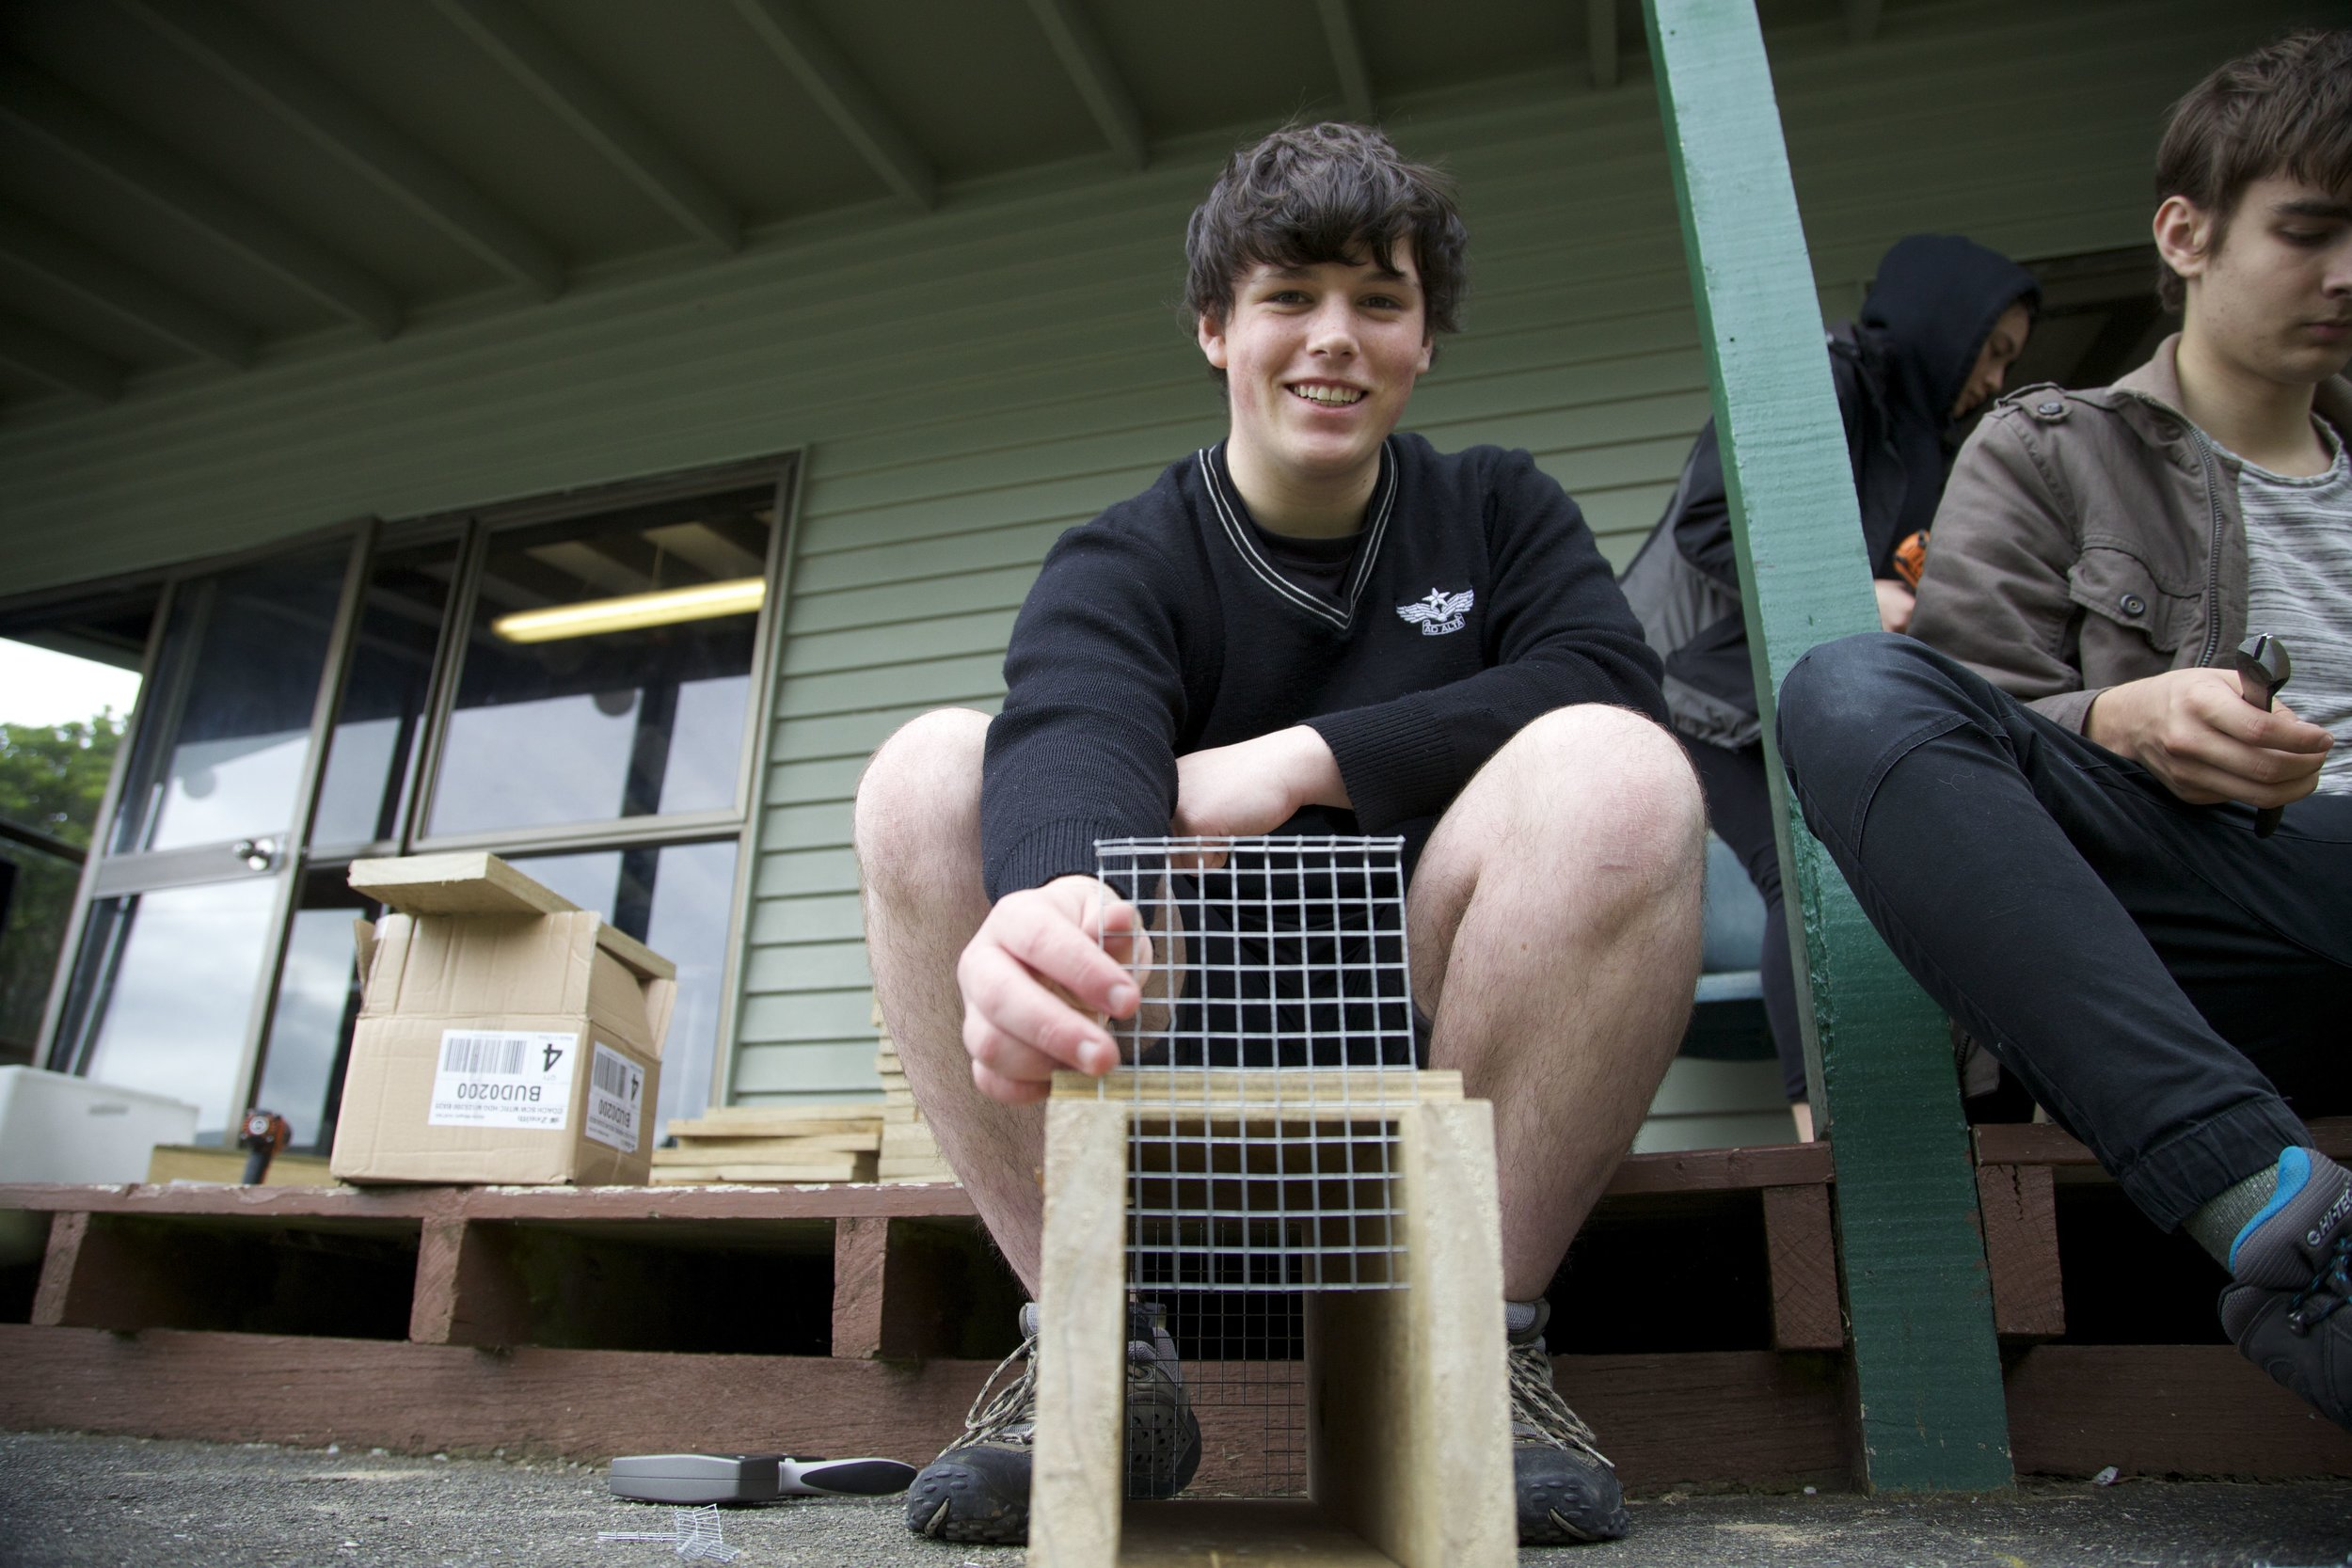 Students from Hutt Valley High School work with the  Common Unity Project Aotearoa  to source recycled wood to build rodent trap tunnels for Predator Free New Zealand. This is both their enterprise and their sustainability project. Students supply Wellington High School with the material for their community trap building workshops then distribute profits back to their group and the Common Unity Project Aotearoa.  Students in the  Papa Taiao Common Unity Academy  gain NCEA qualifications in pest control, business studies and sustainability.